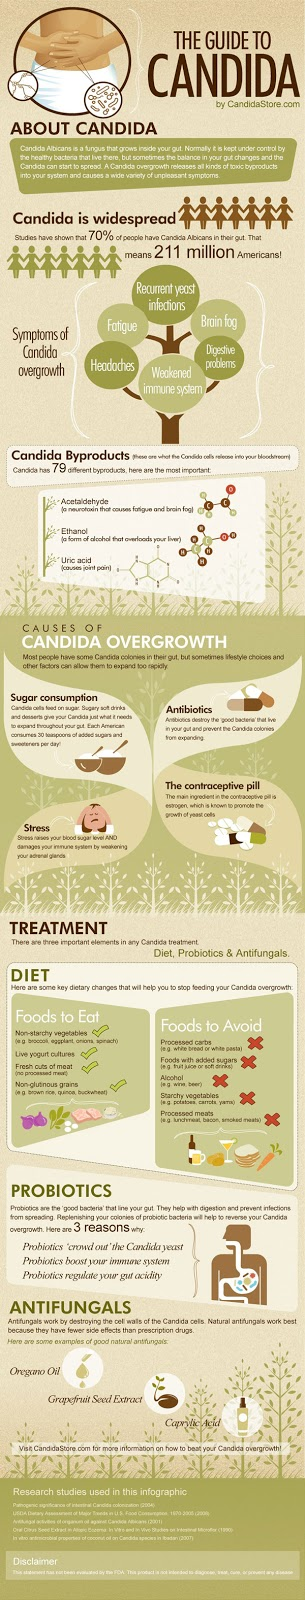 Skinny Diva Diet: A Guide to Candida [Infographic]